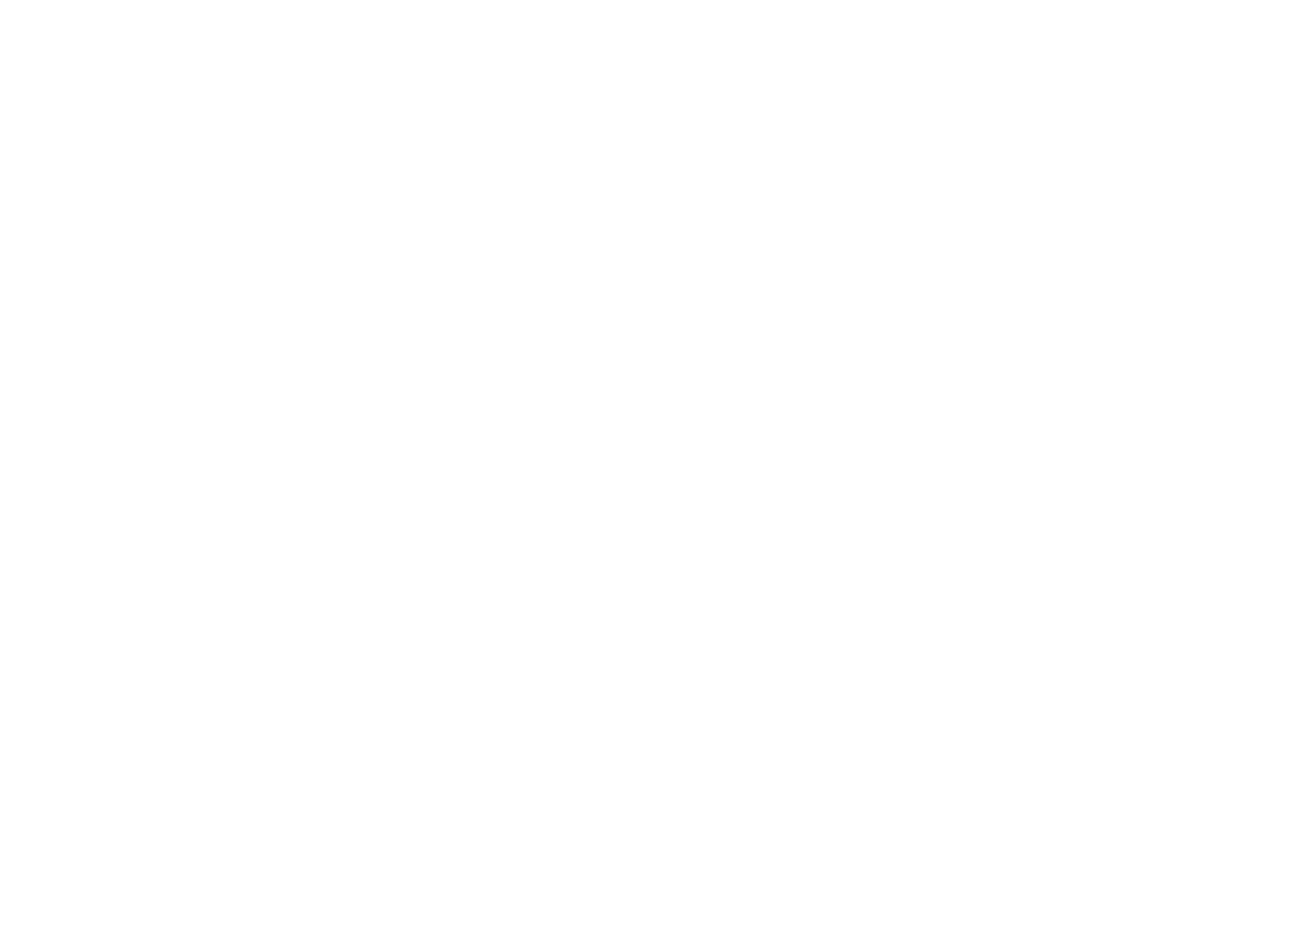 Key to Chiaretto